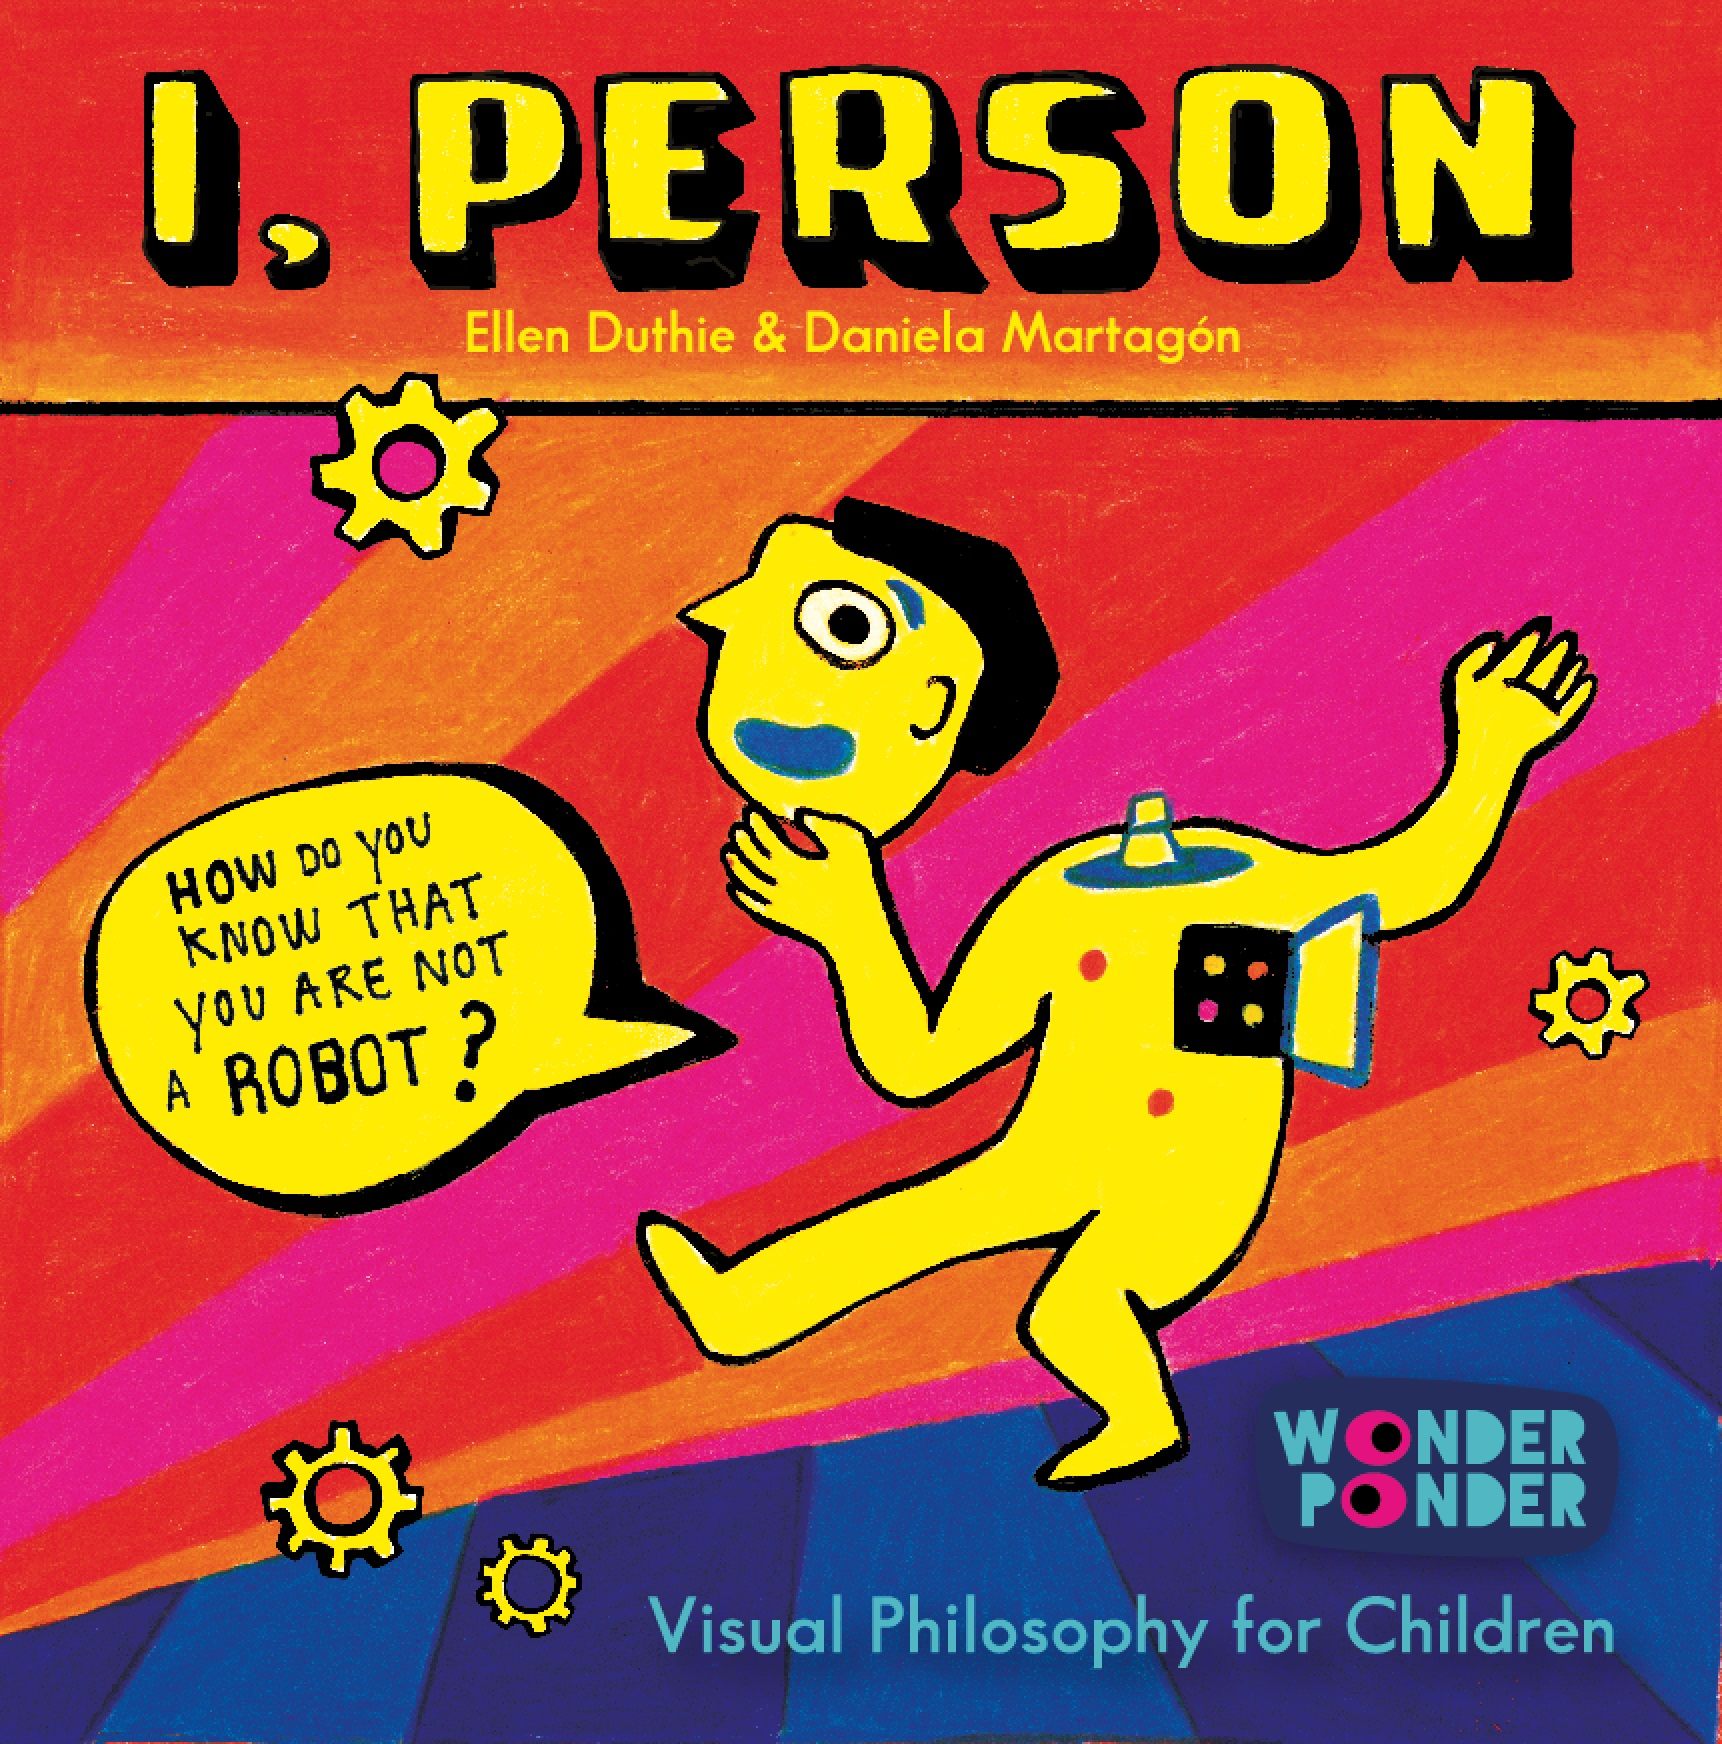 I, Person Cover.jpg